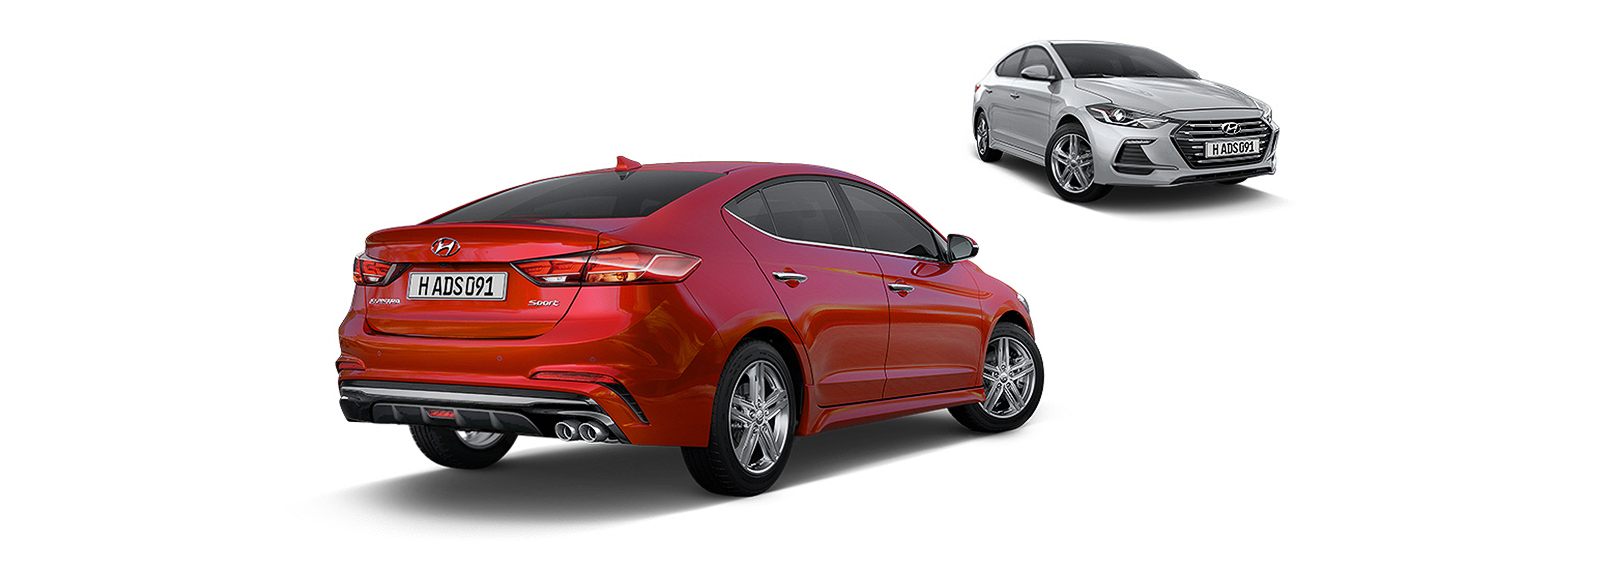 Side rear view of red Elantra Sport in front and silver Elantra Sport at the back